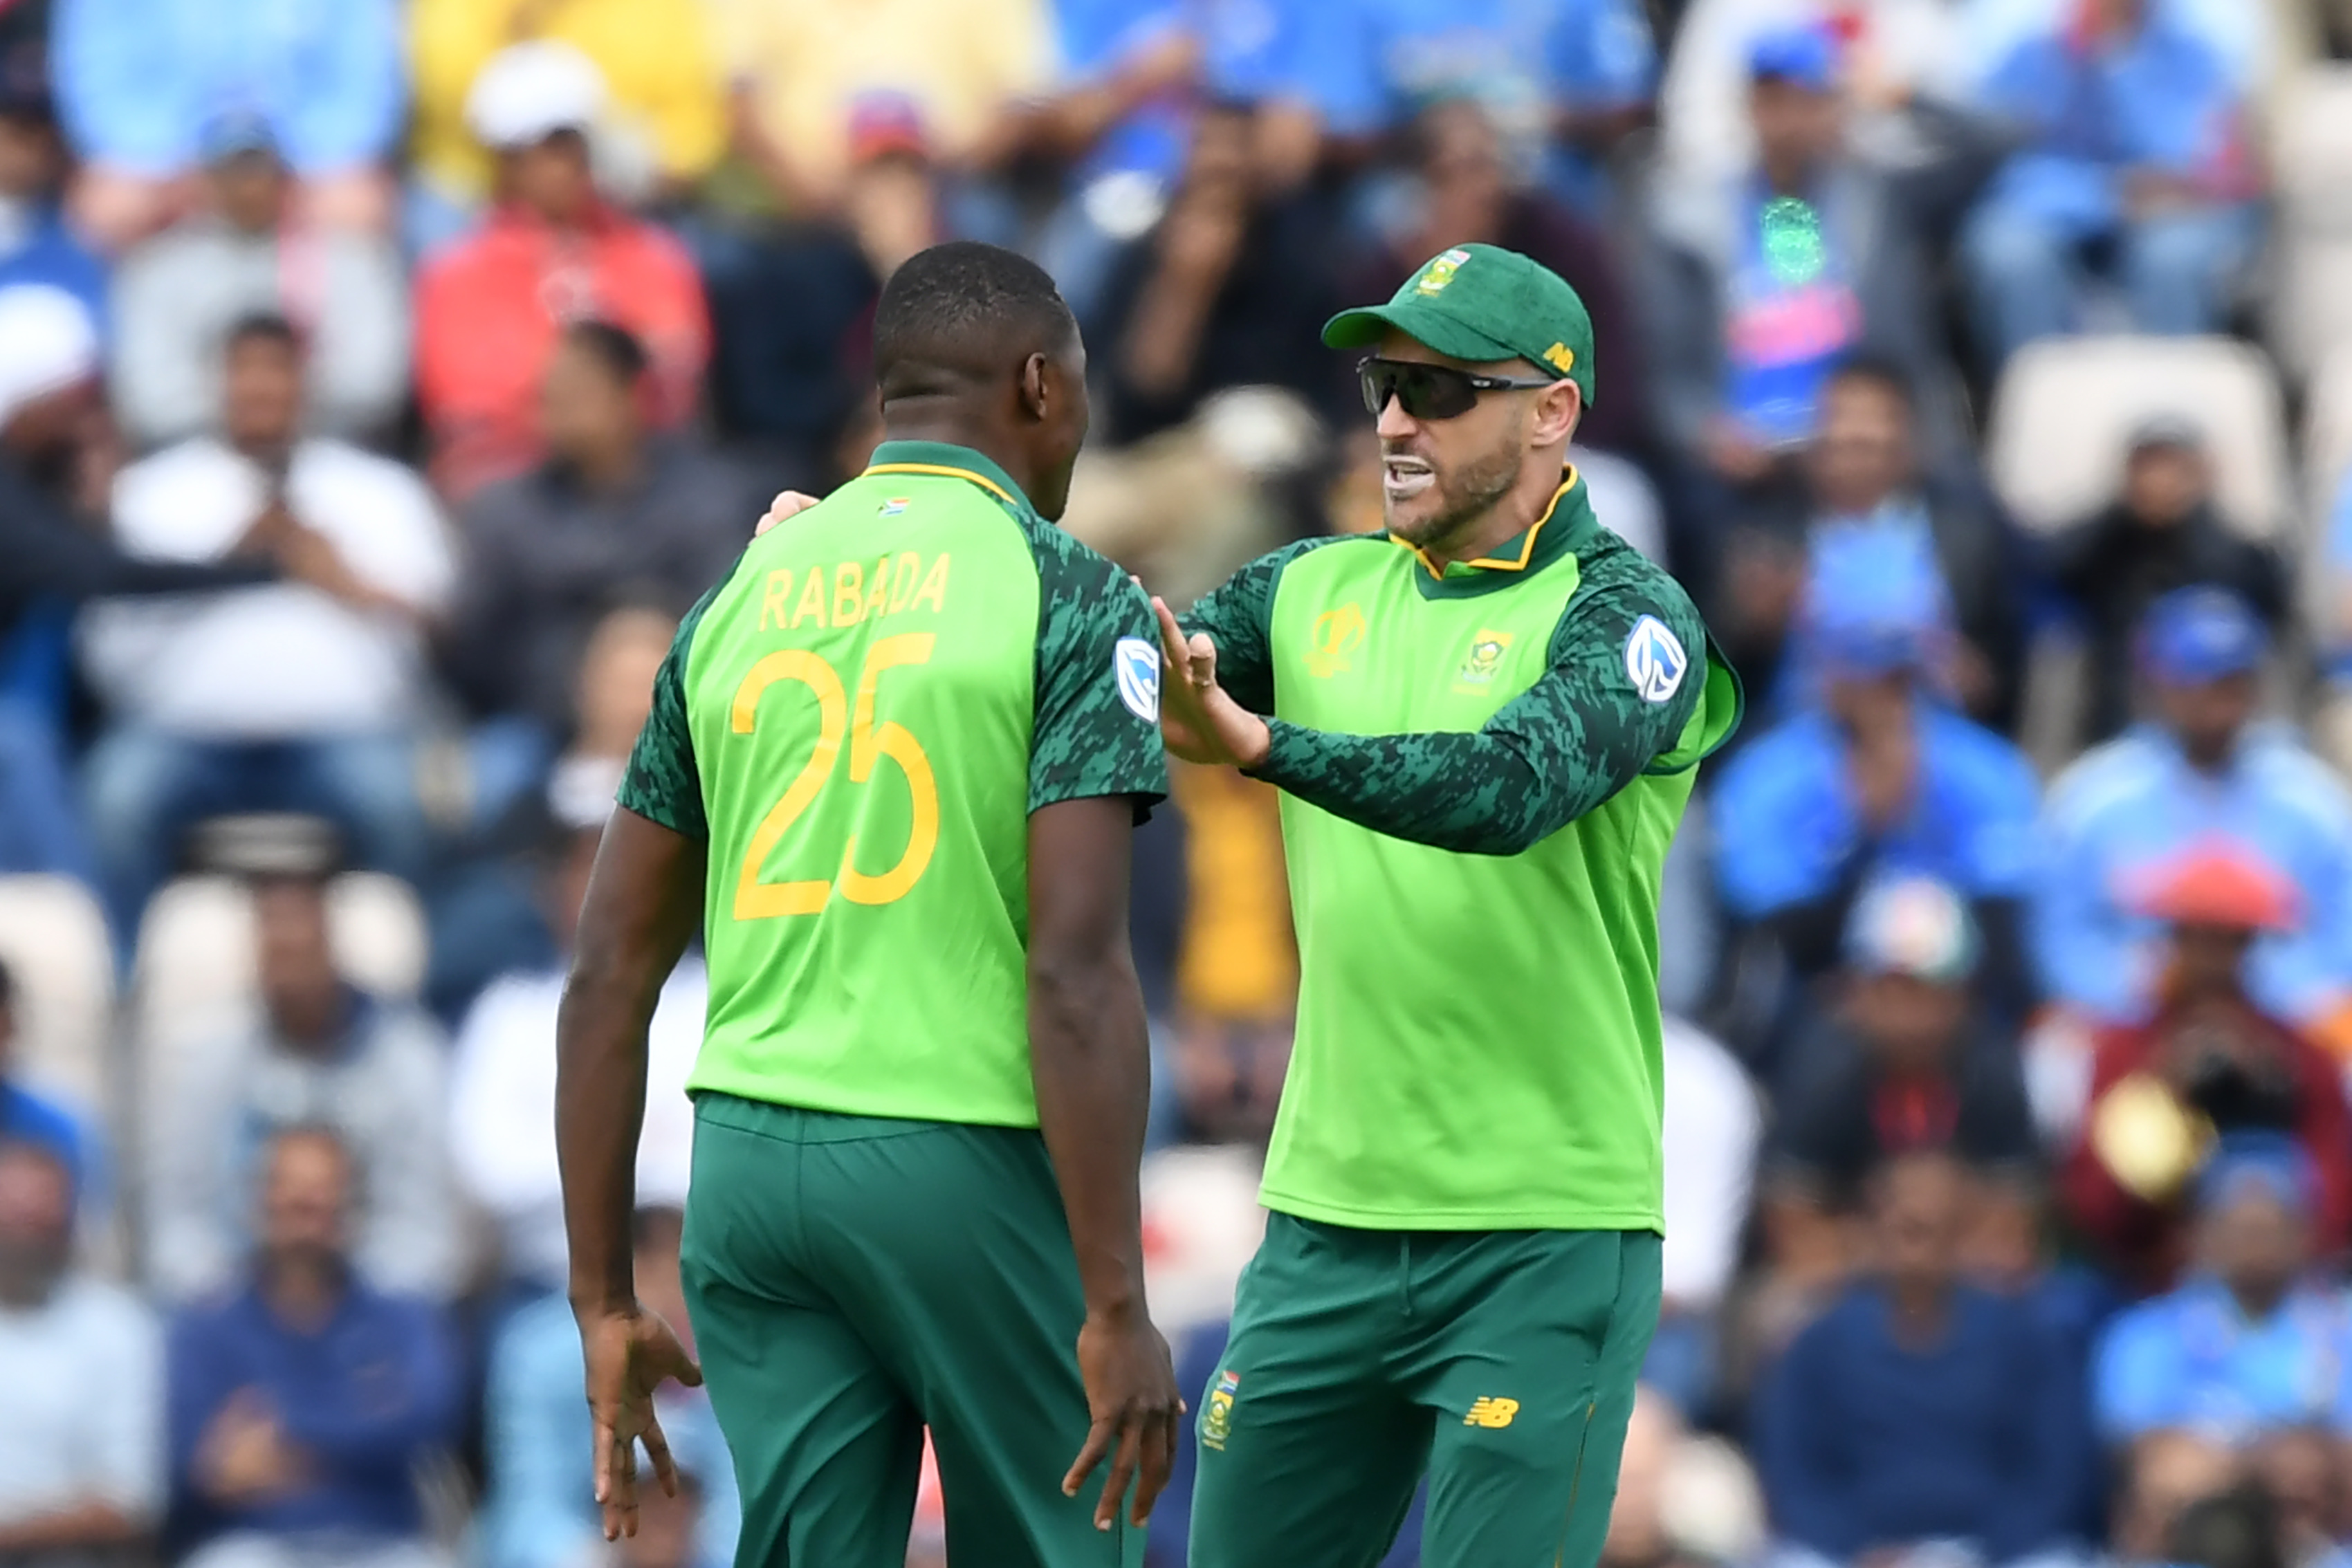 Kagiso Rabada (L) celebrates with Faf du Plessis during the 2019 Cricket World Cup group stage match at the Rose Bowl in Southampton, southern England, on 5 June 2019.